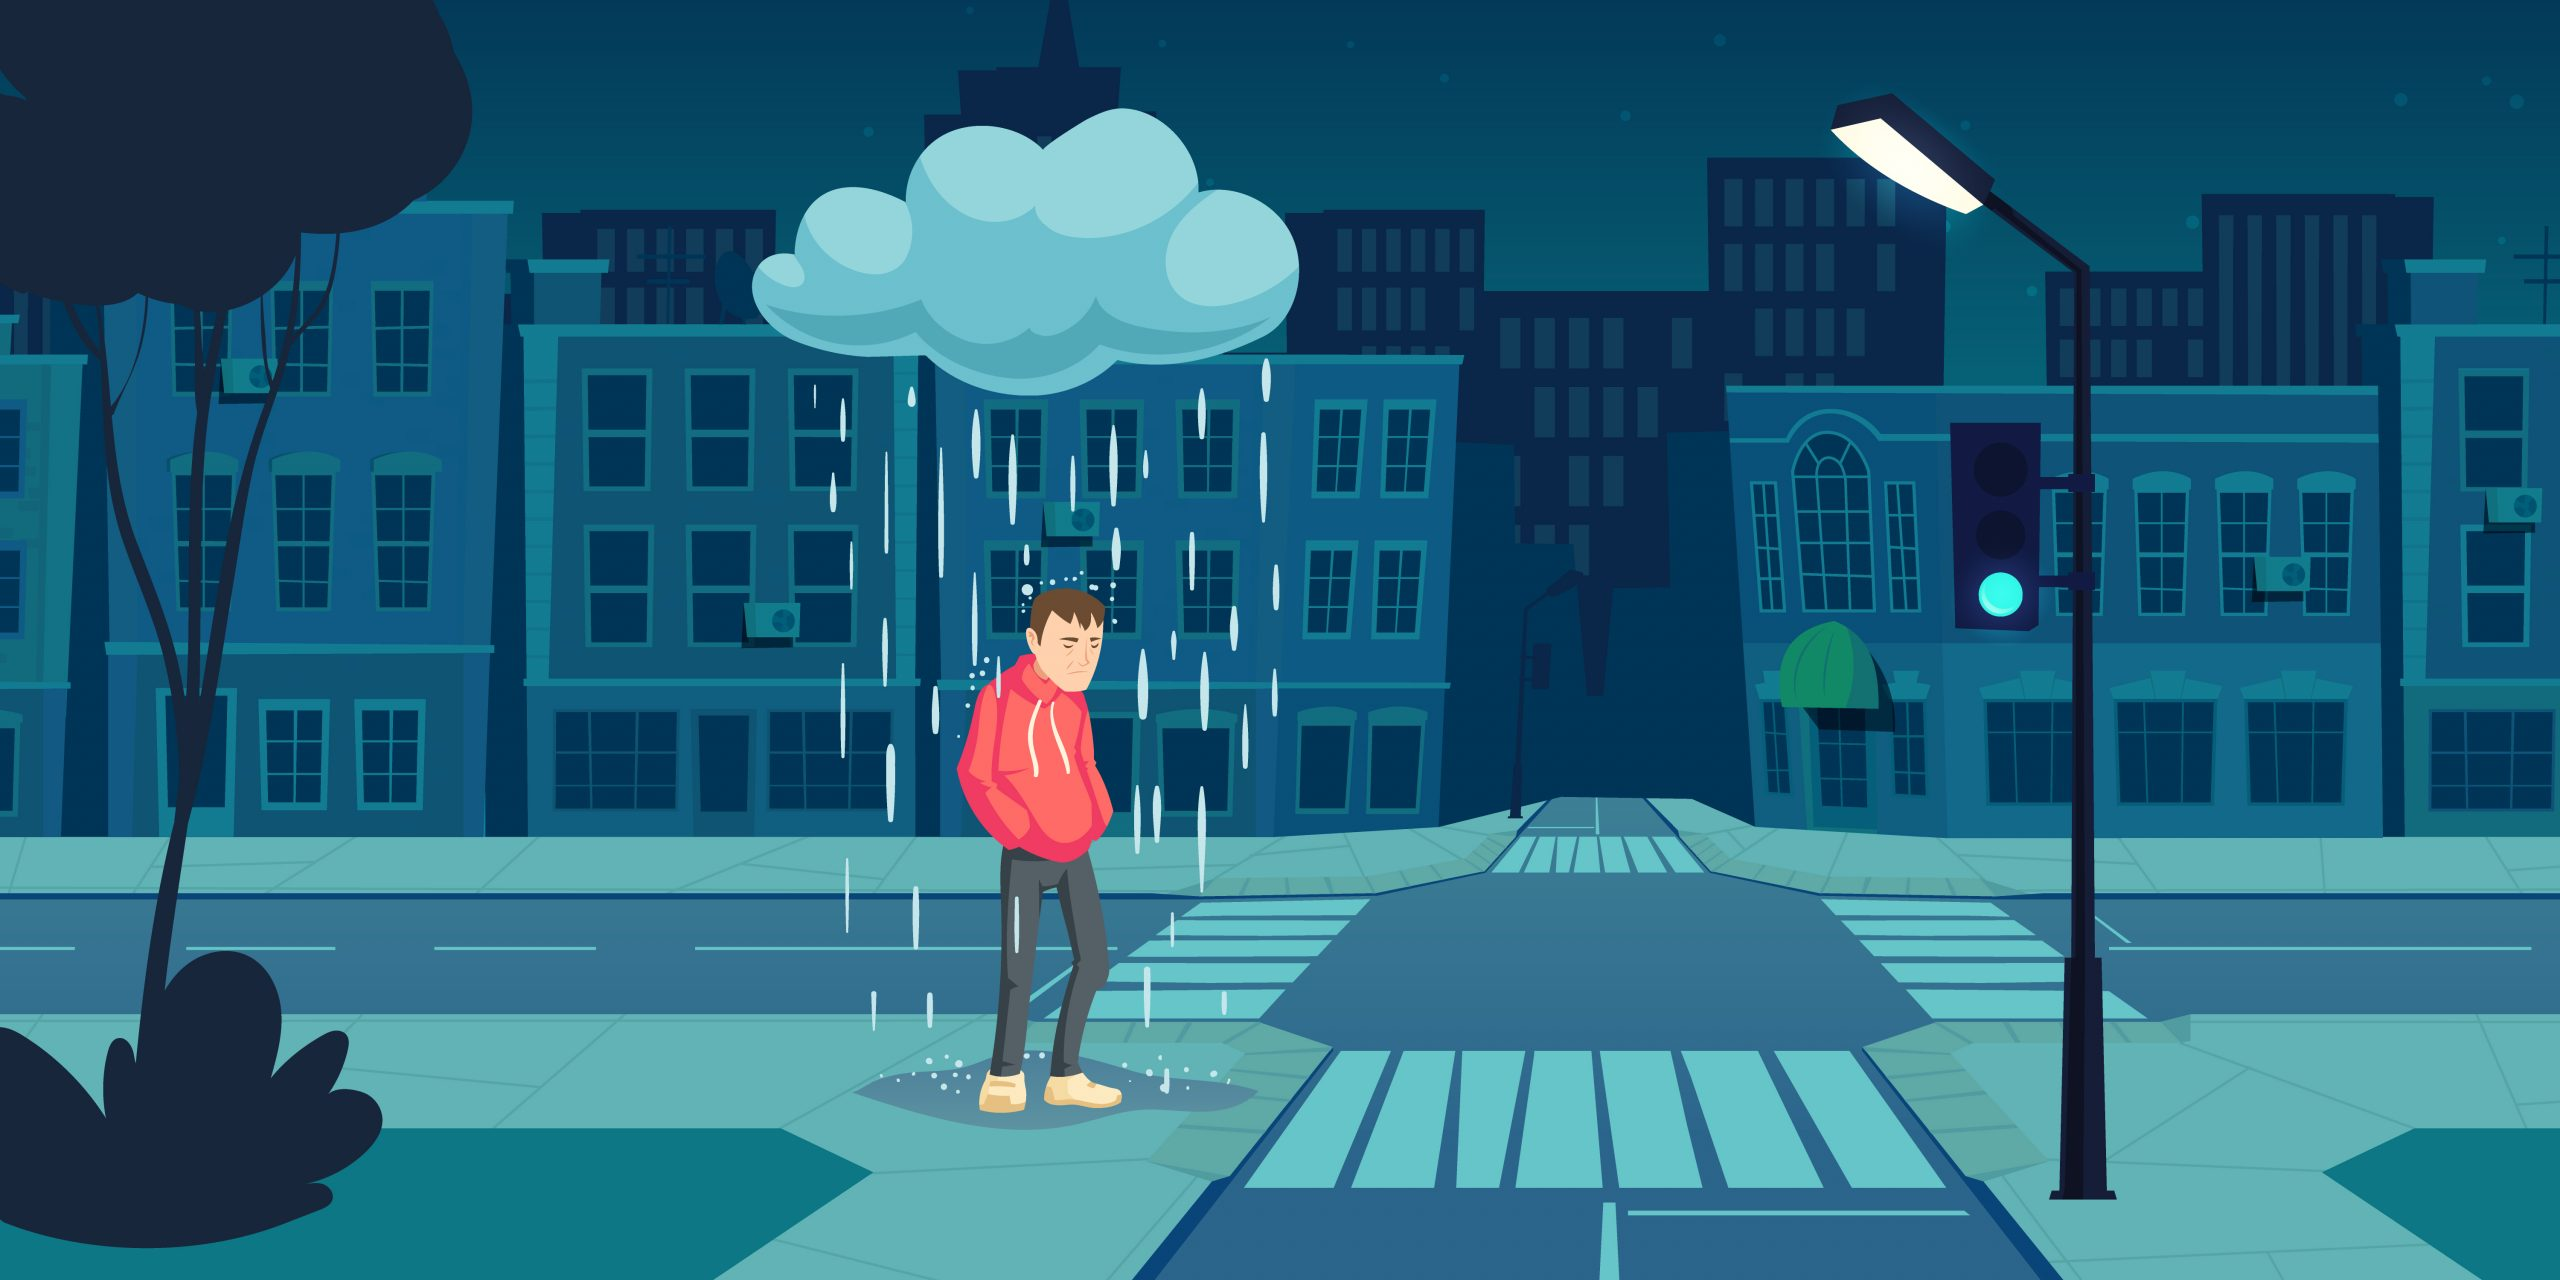 Depressed man stand under cloud with falling rain